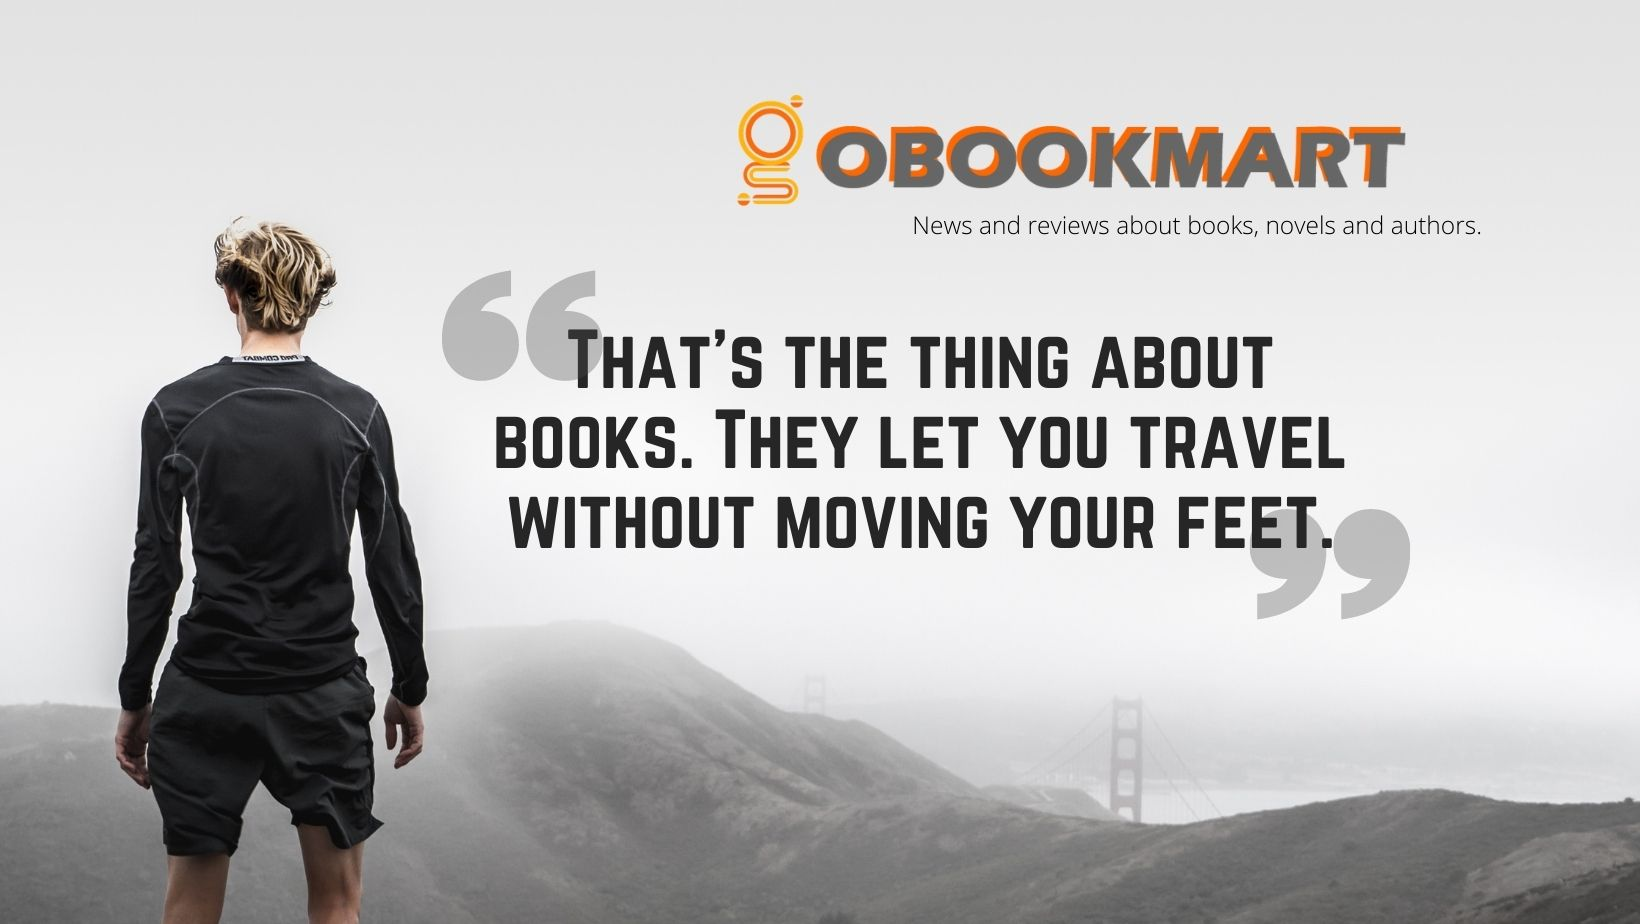 gobookmart reviews, opinions and consumer feedback